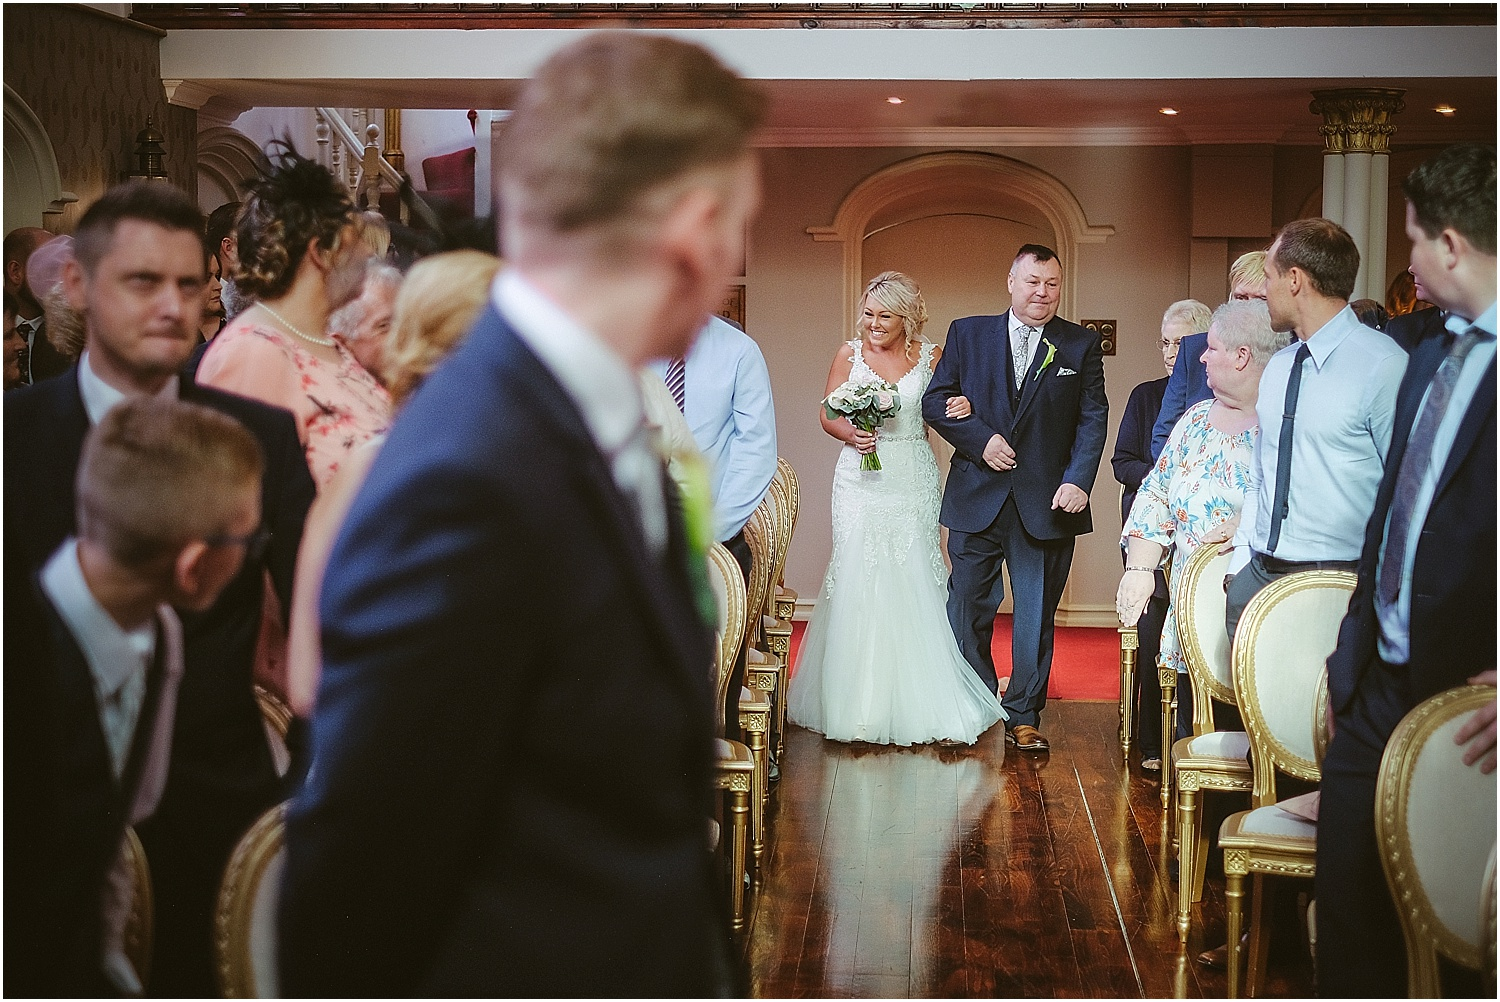 Lartington Hall weddings by www.2tonephotography.co.uk 034.jpg